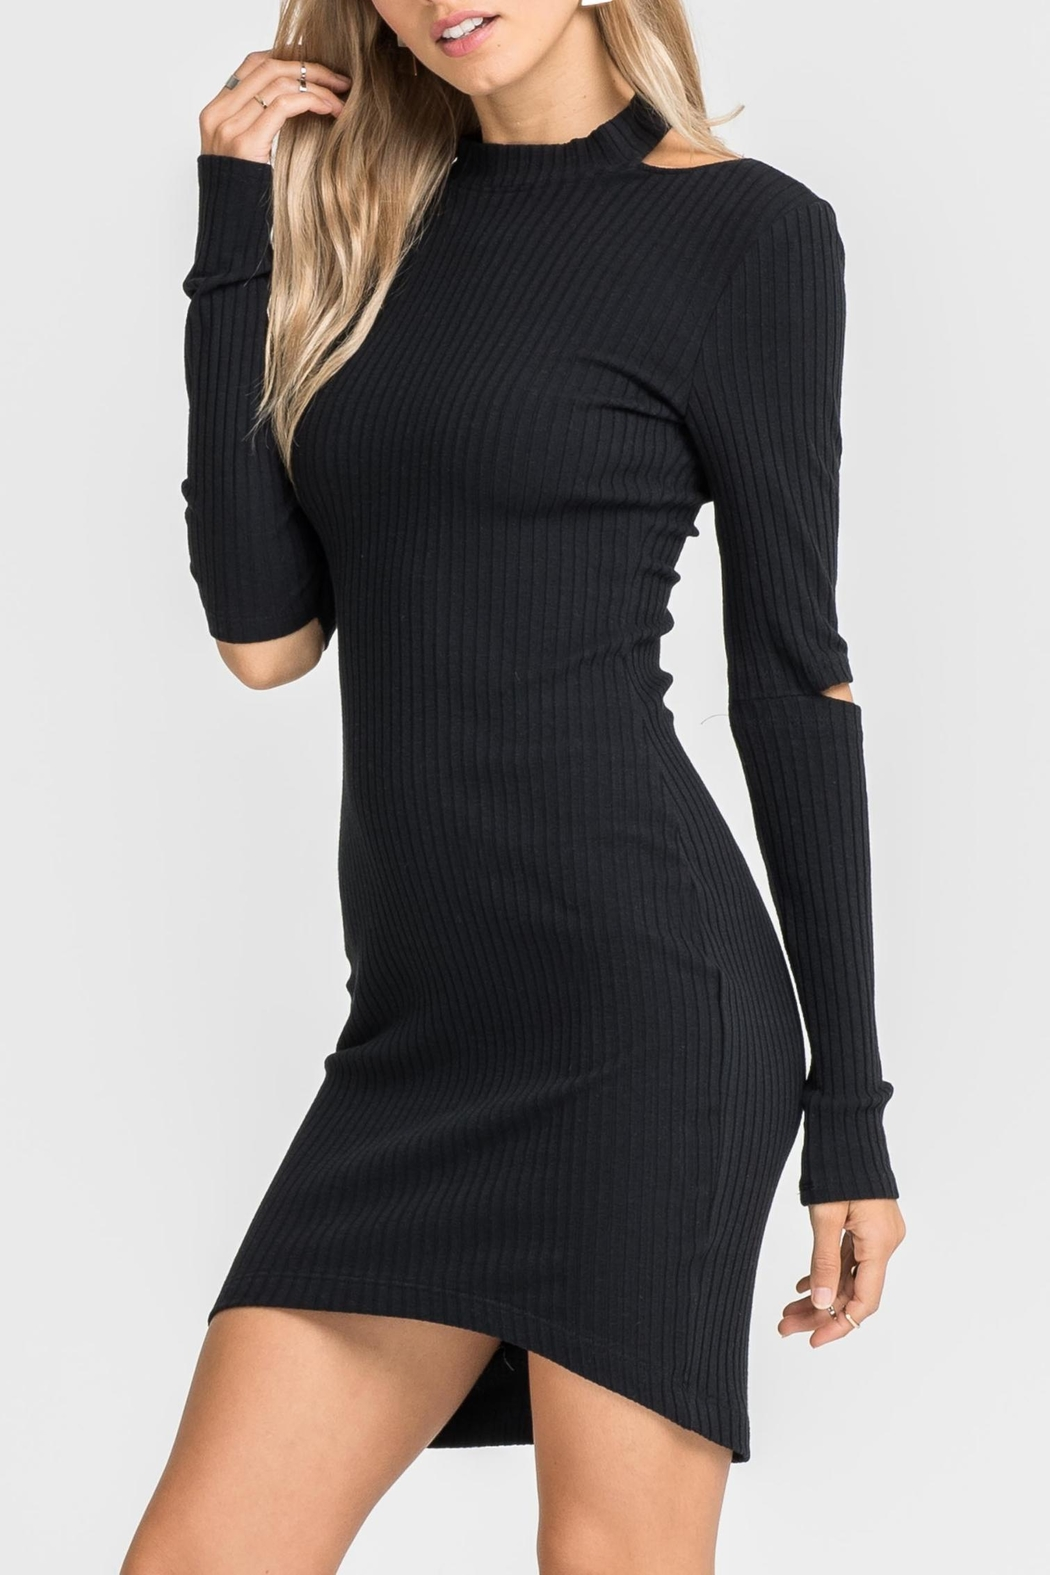 Unknown Factory Black Sweater Dress - Main Image